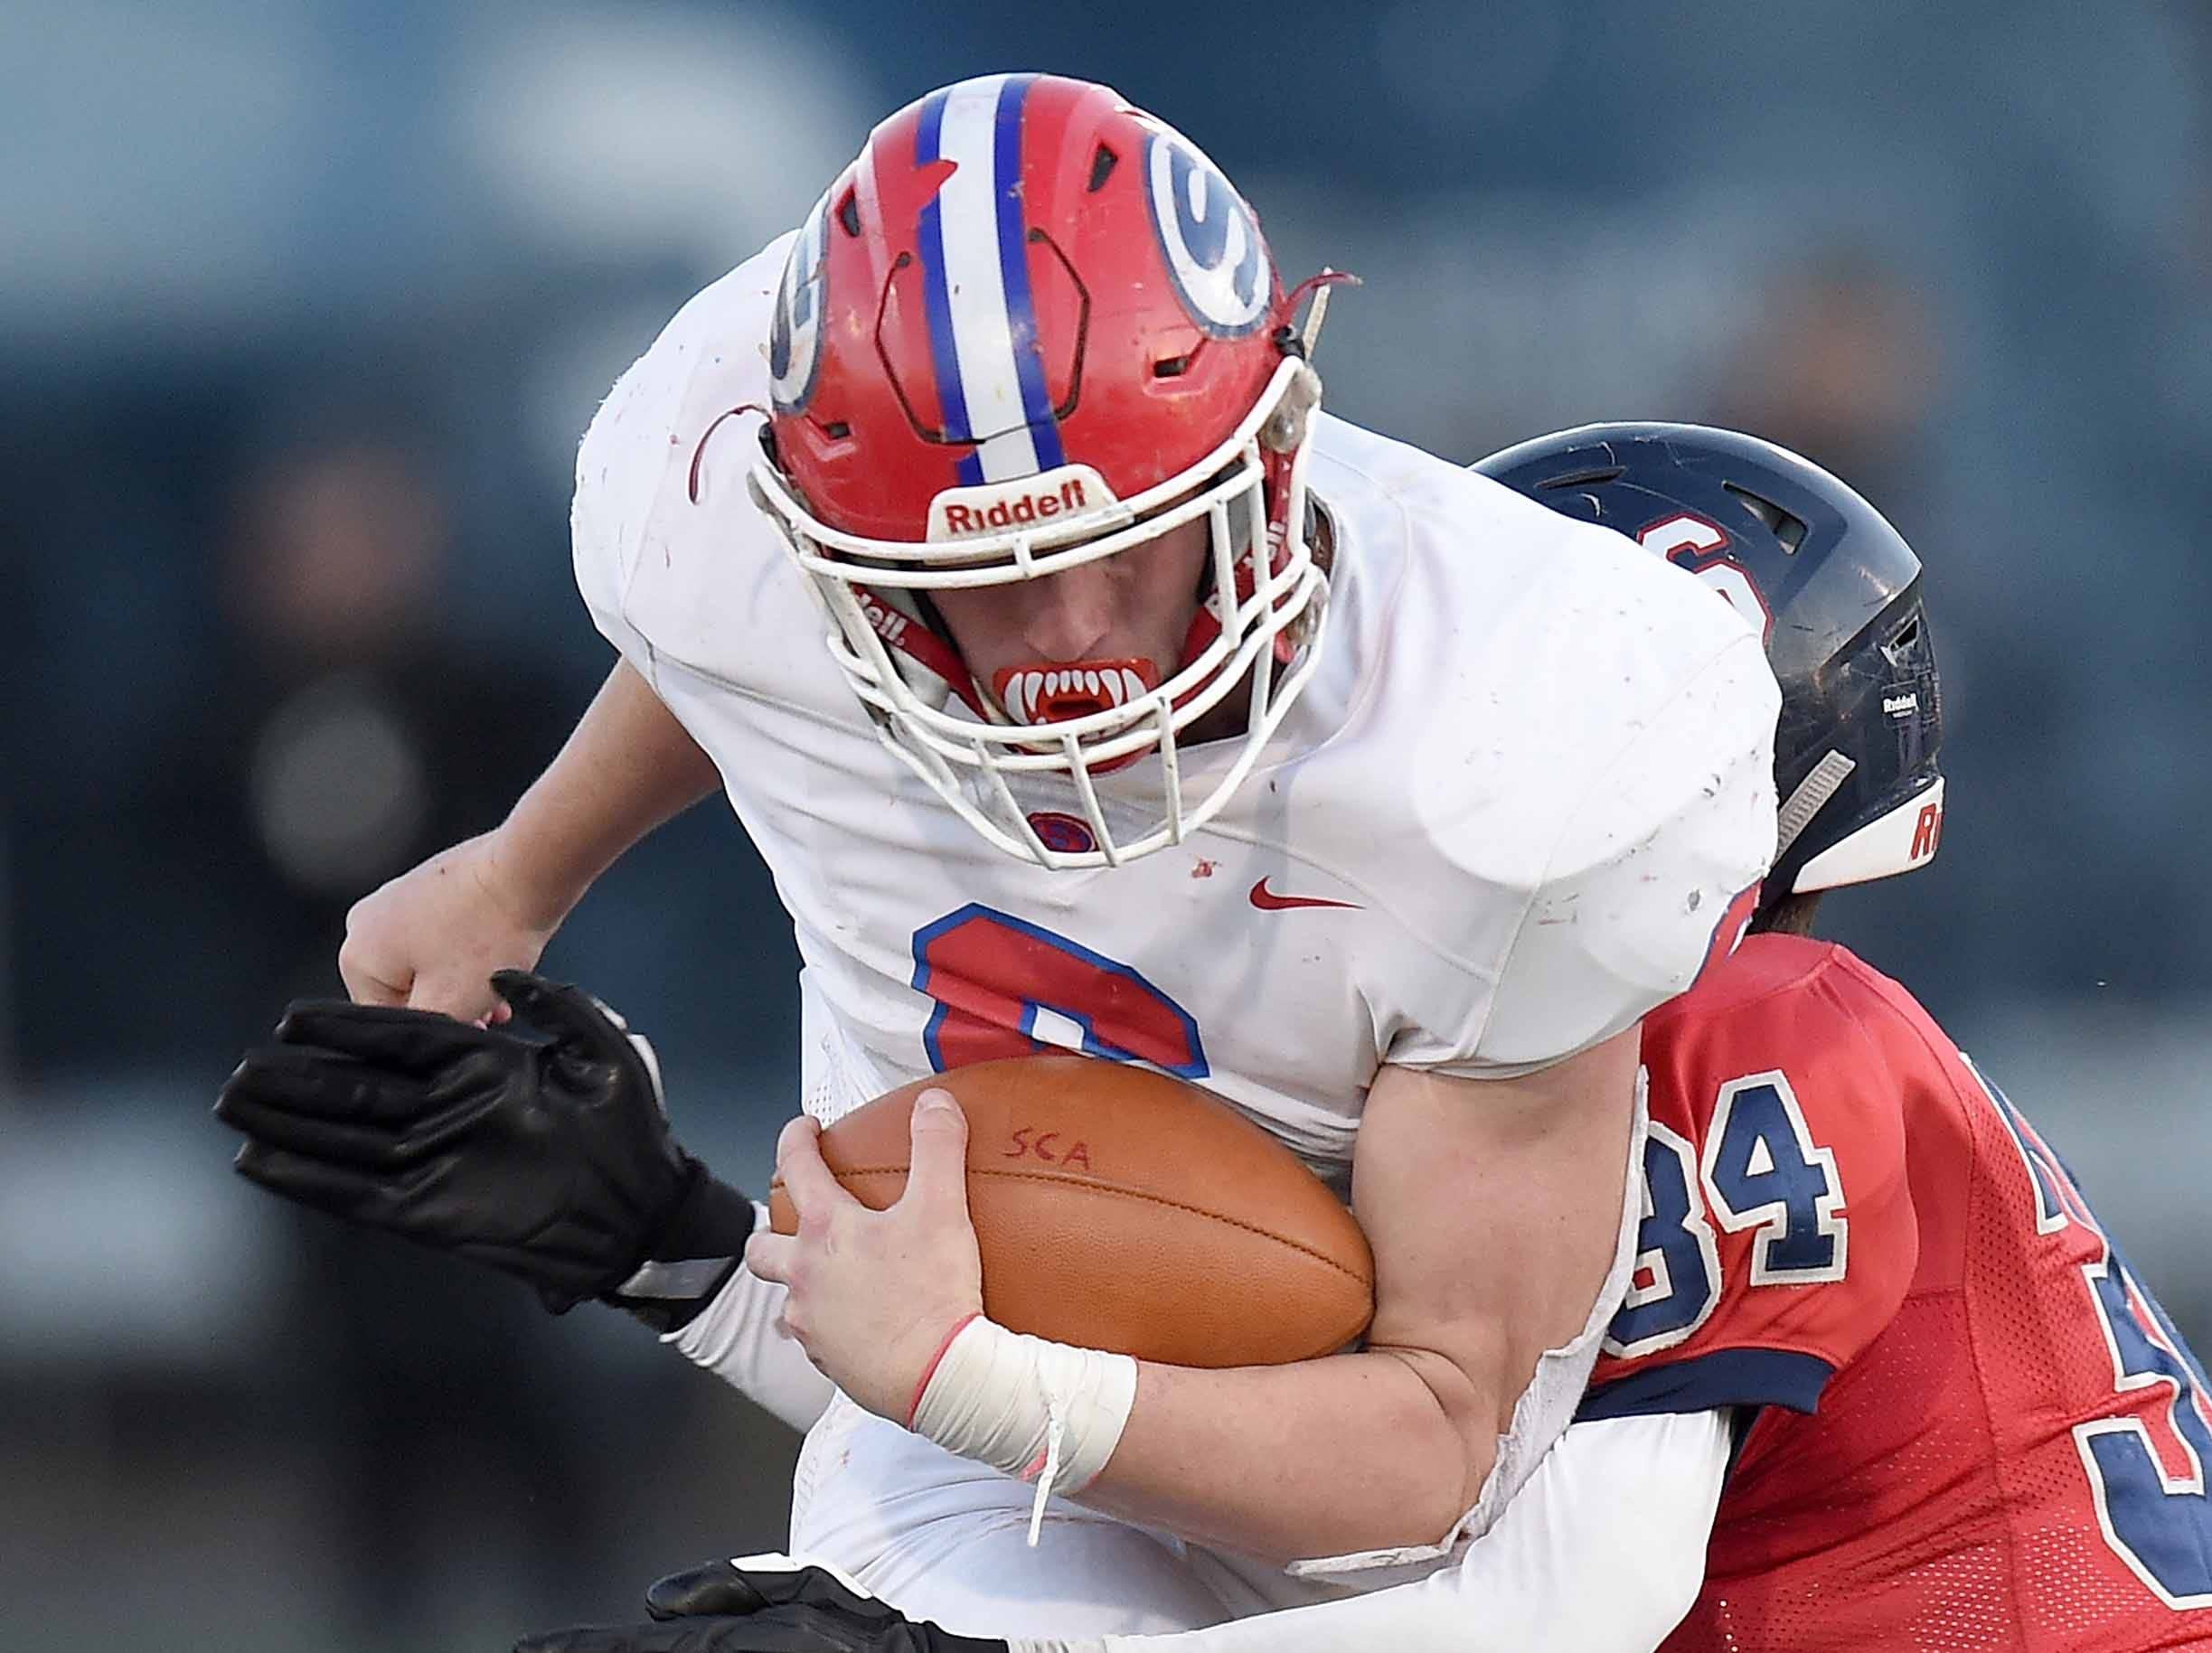 Simpson Academy's Caleb Garner (6) runs against Lamar School on Thursday, November 15, 2018, in the MAIS Class AAAA-D2 Football Championship at Jackson Academy in Jackson, Miss.